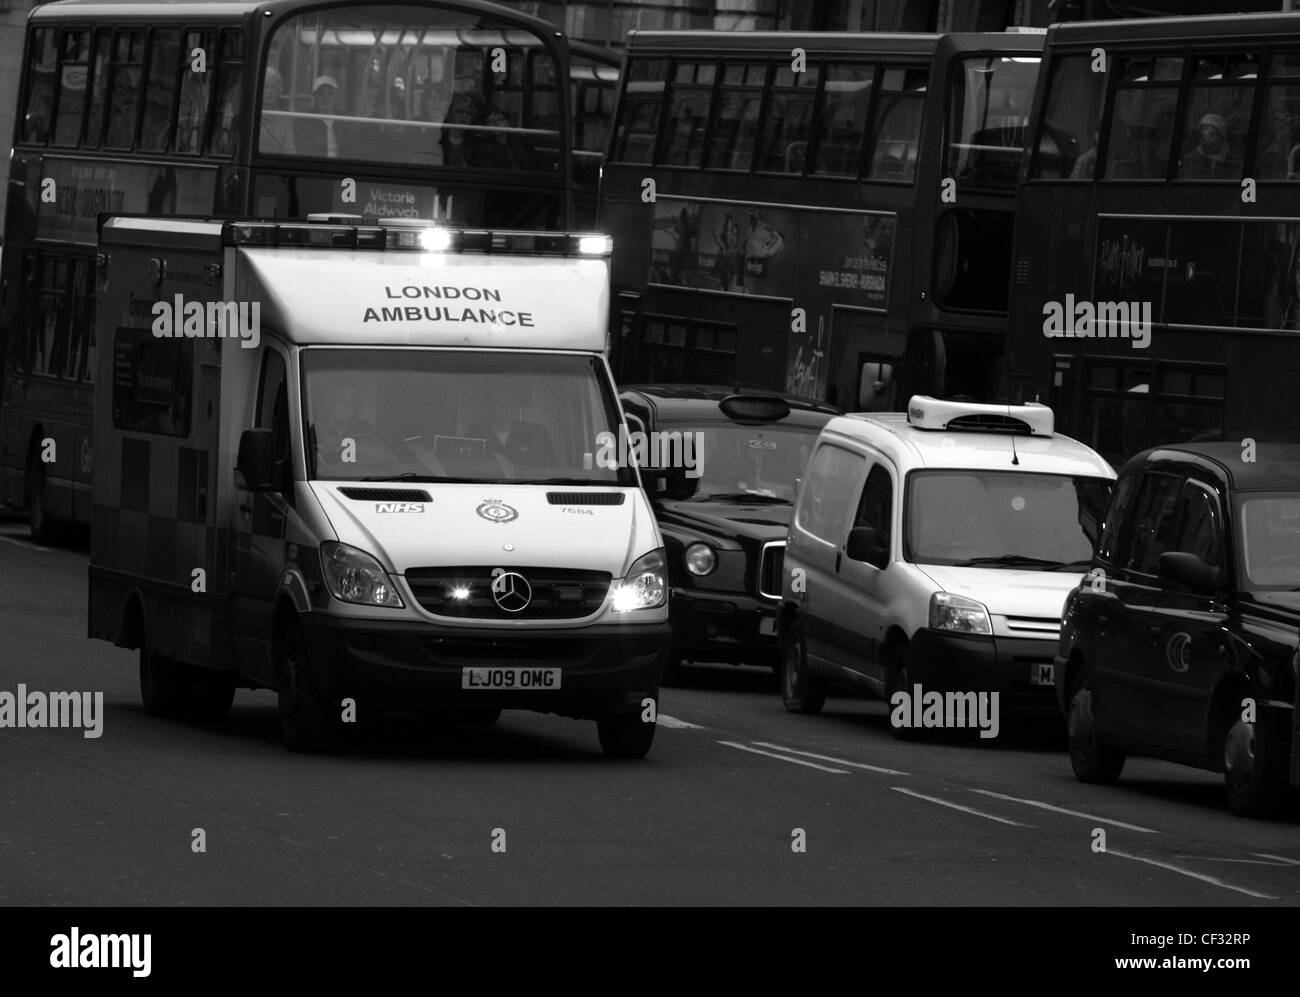 an ambulance traveling along a road in London - Stock Image